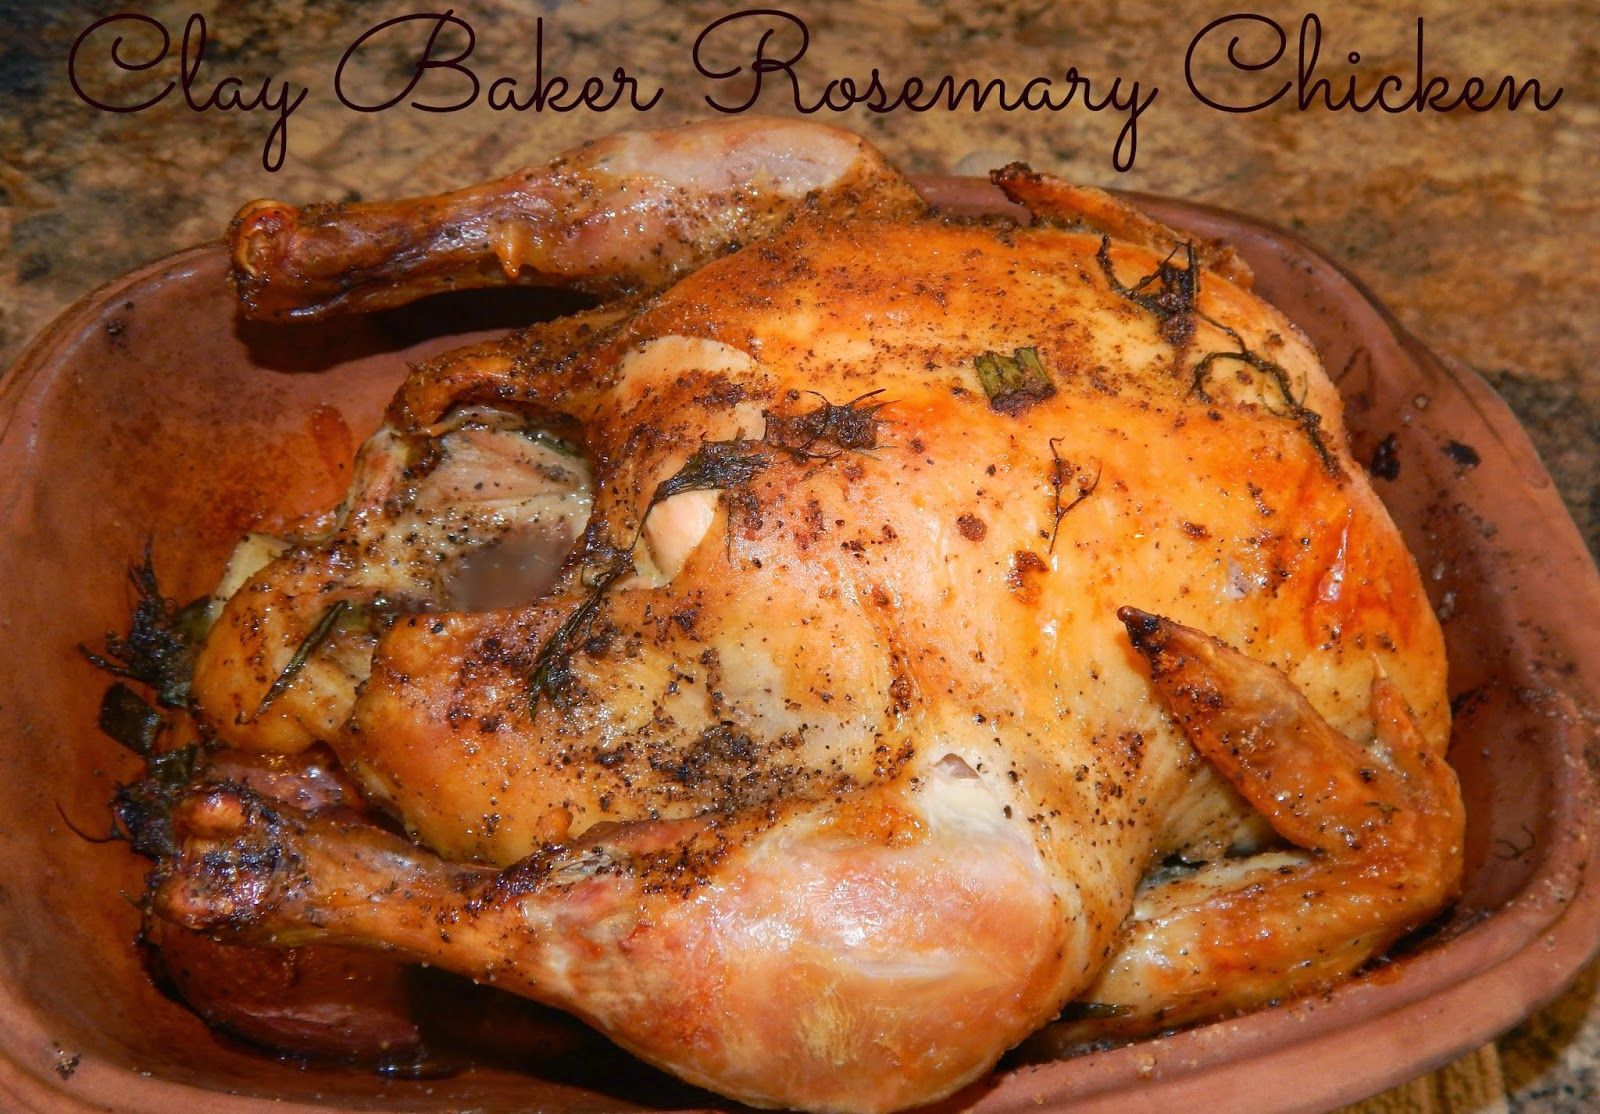 Clay Baker Roasted Rosemary Chicken Cooking Whole Chicken Rosemary Chicken Chicken Cooker